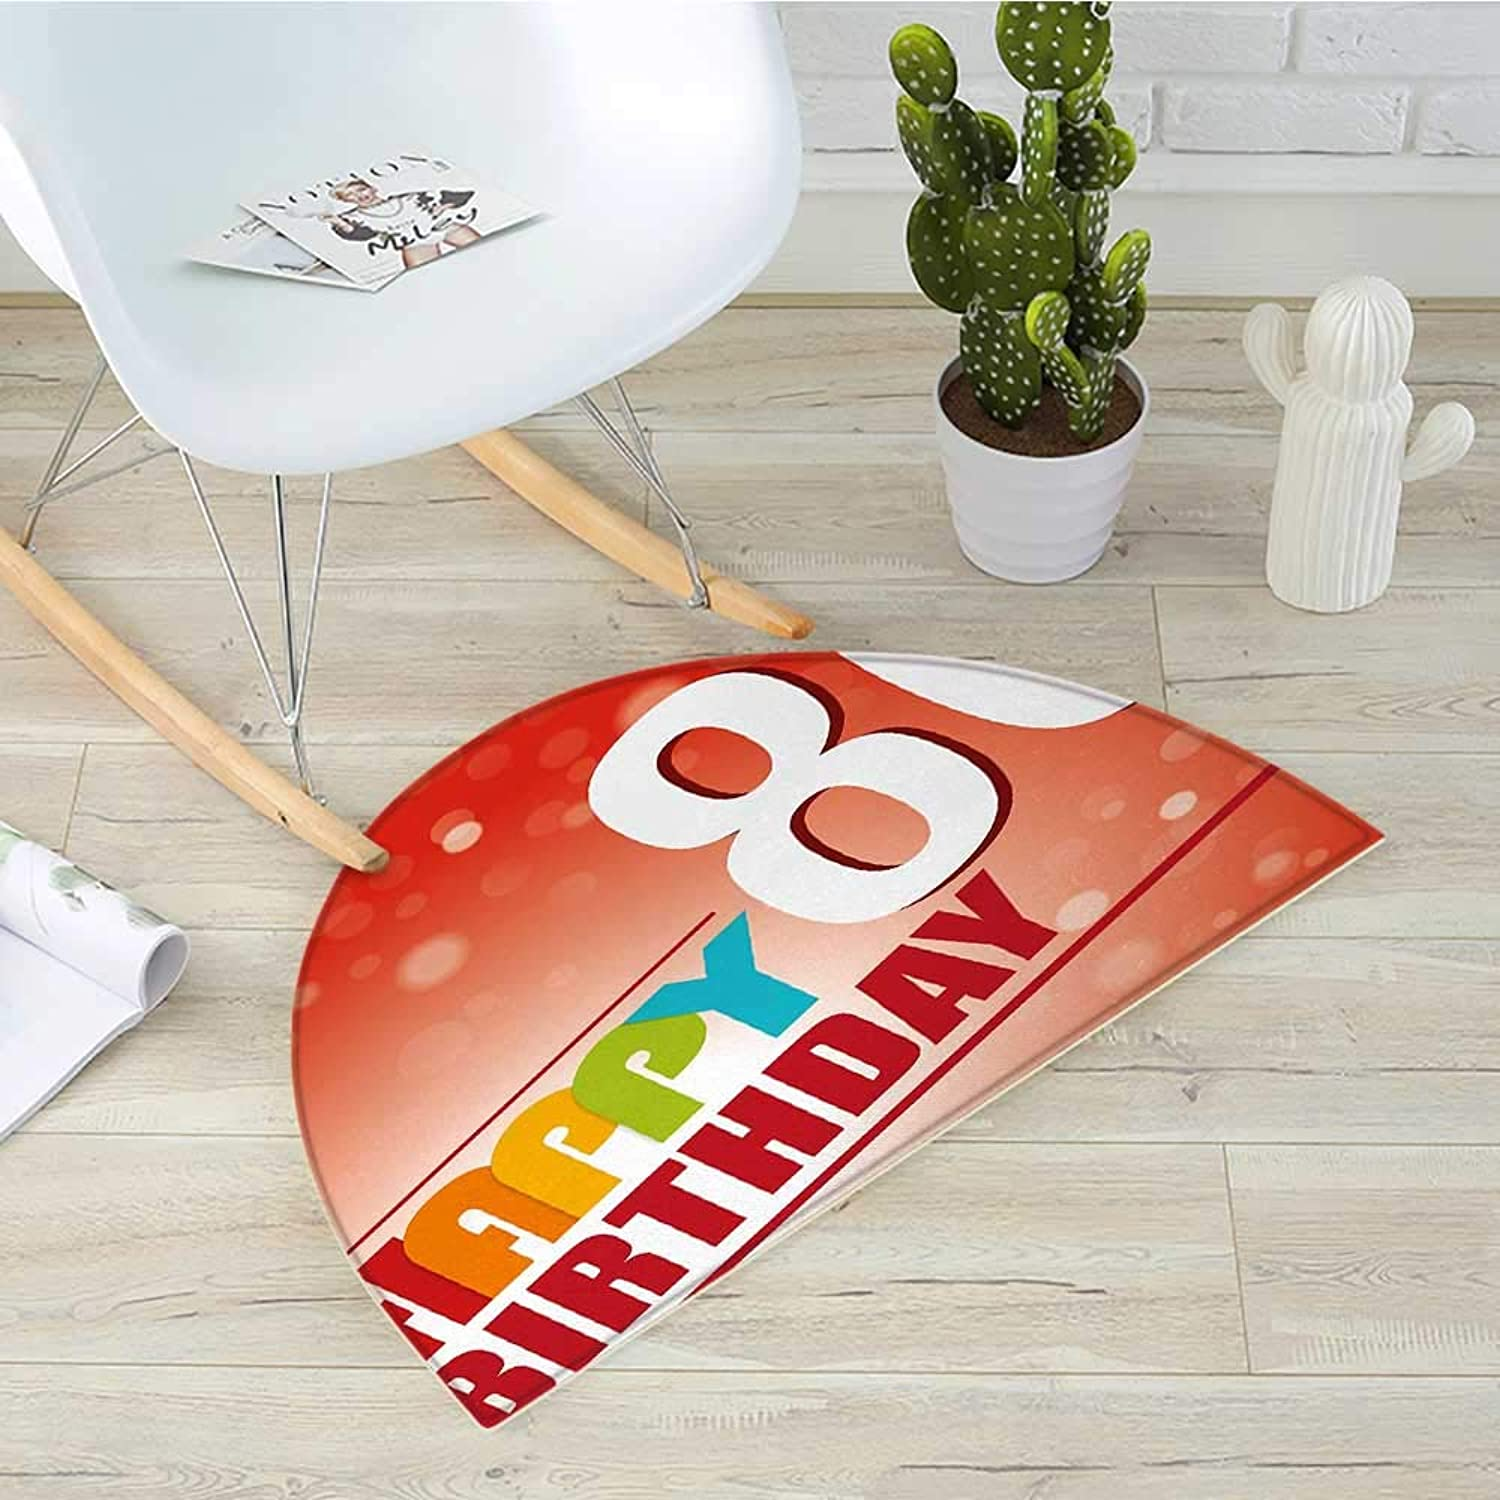 80th Birthday Semicircular Cushion80 Wise Age colorful Birthday Party with Abstract Background Entry Door Mat H 43.3  xD 64.9  Red Vermilion and White